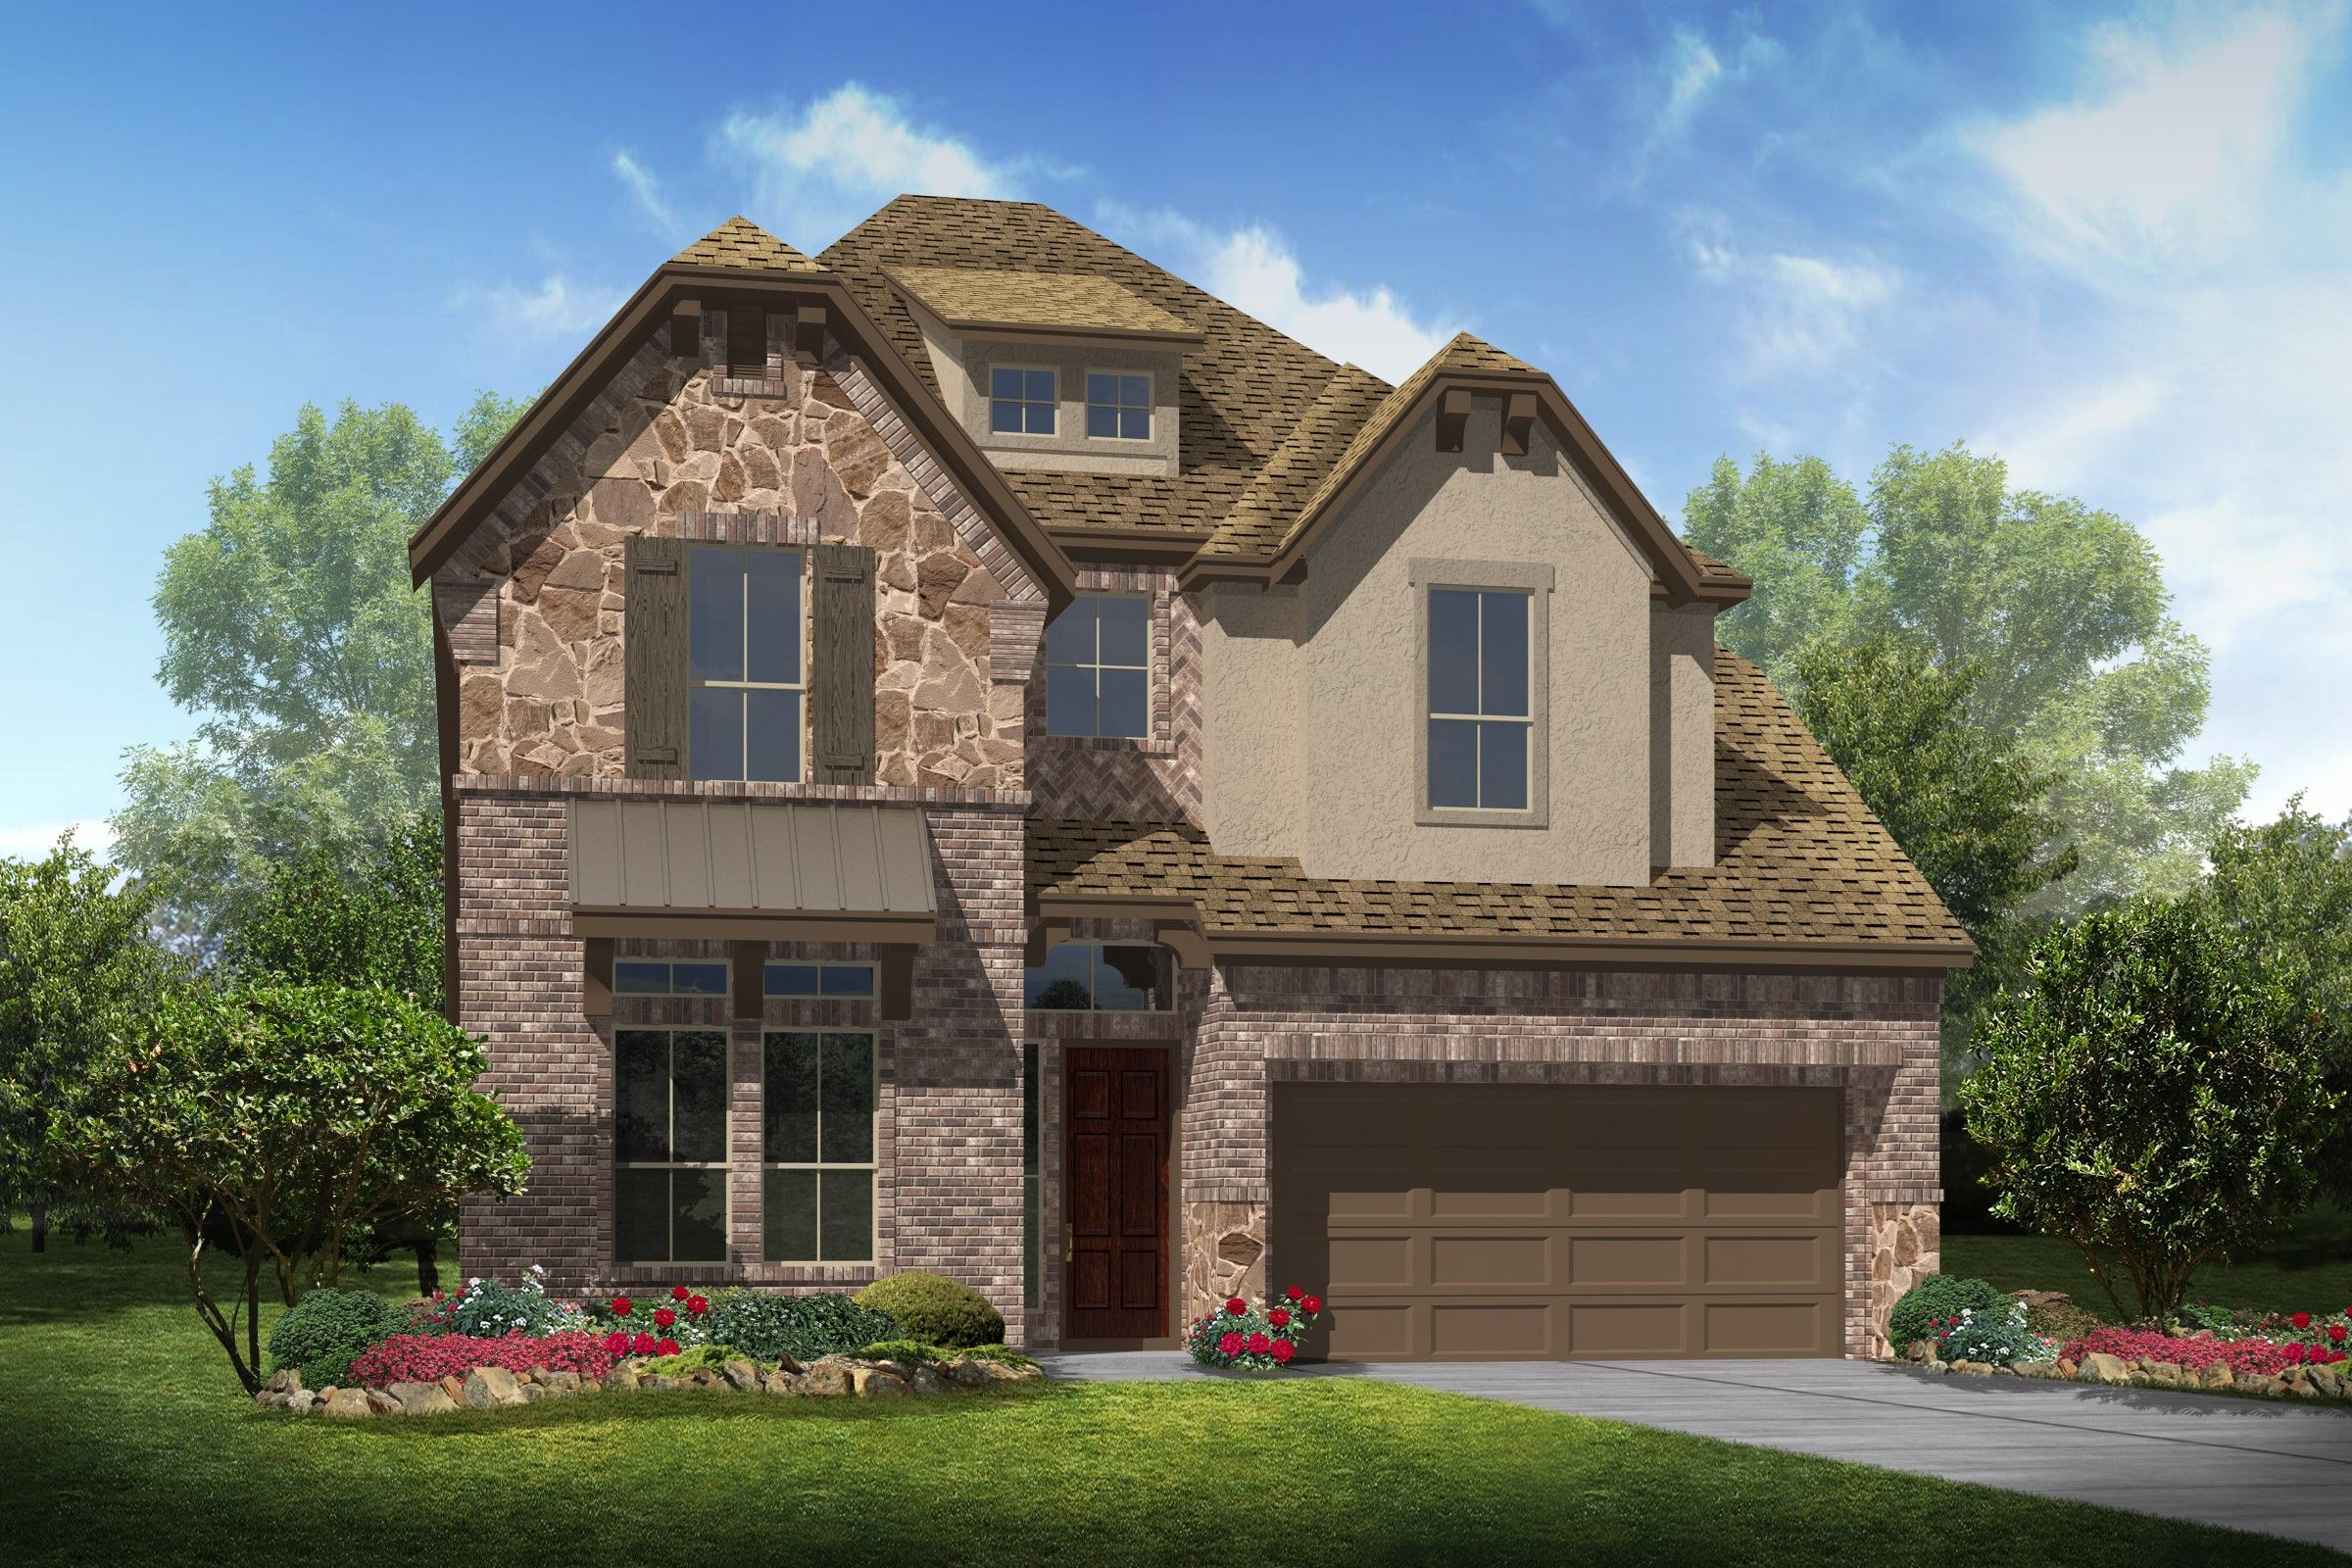 Single Family for Sale at Parkway Terrace - Spencer 2109 Westbourne Park Drive Houston, Texas 77077 United States